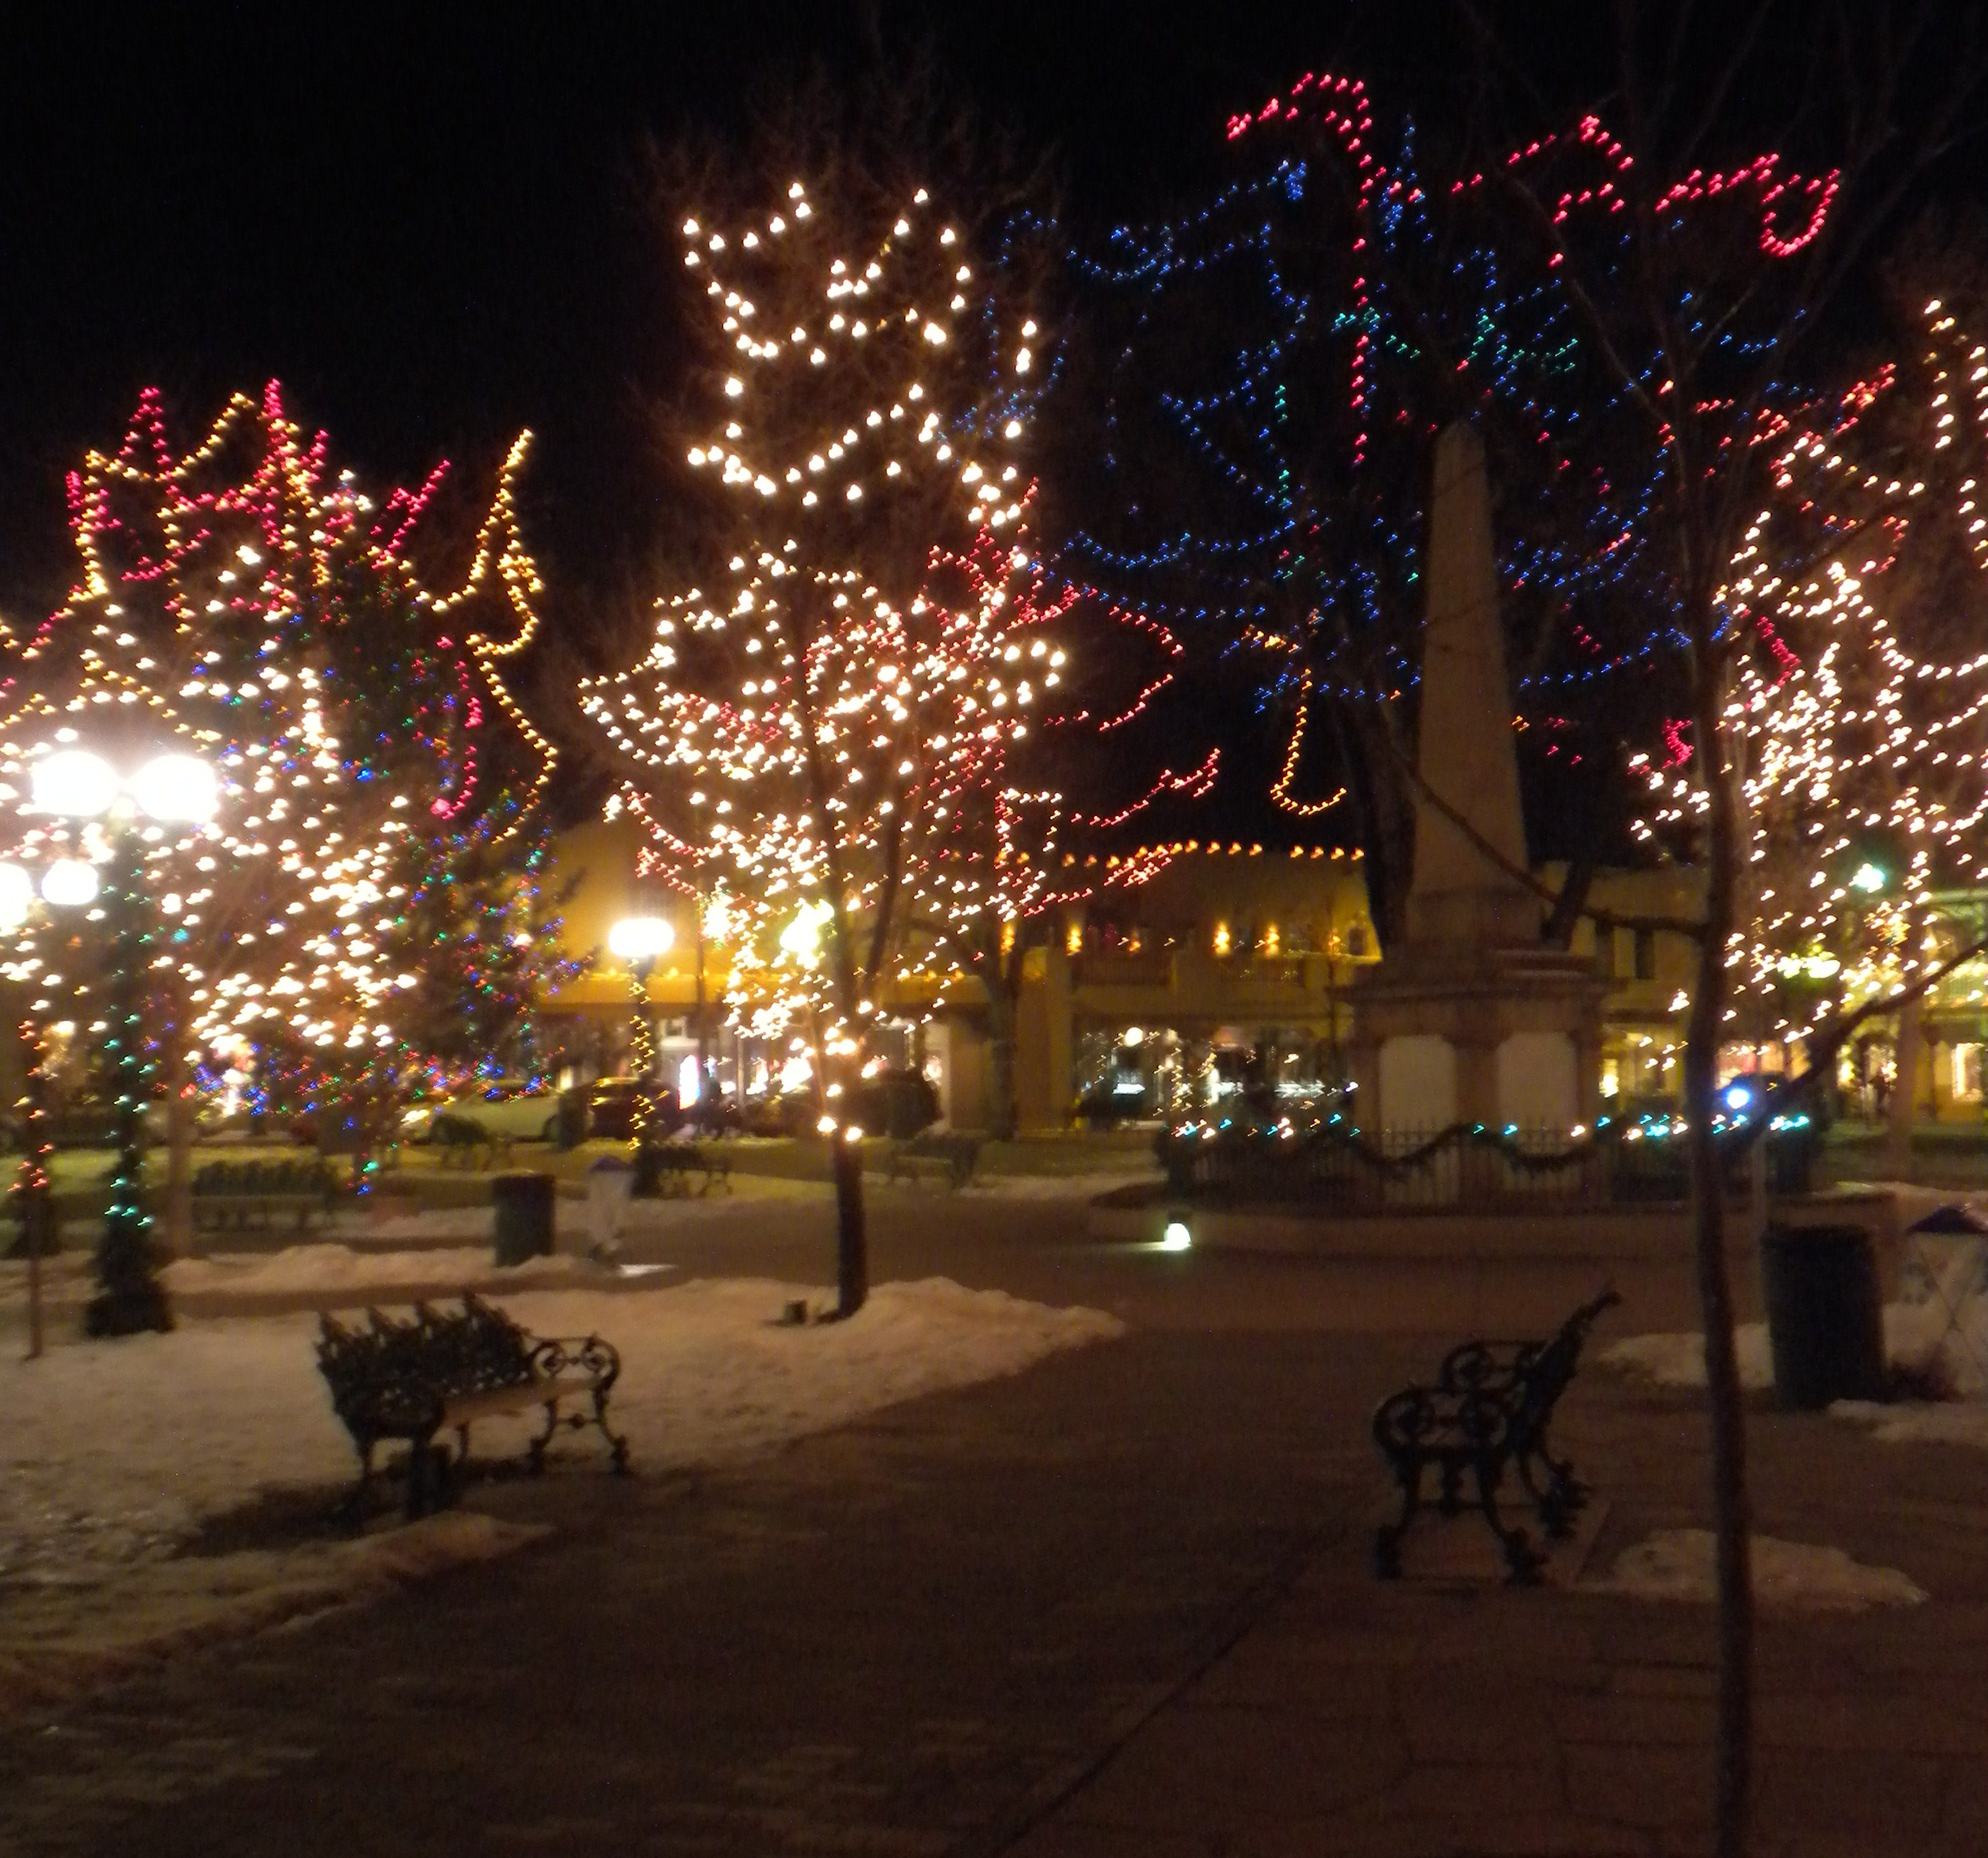 More lights on the Plaza